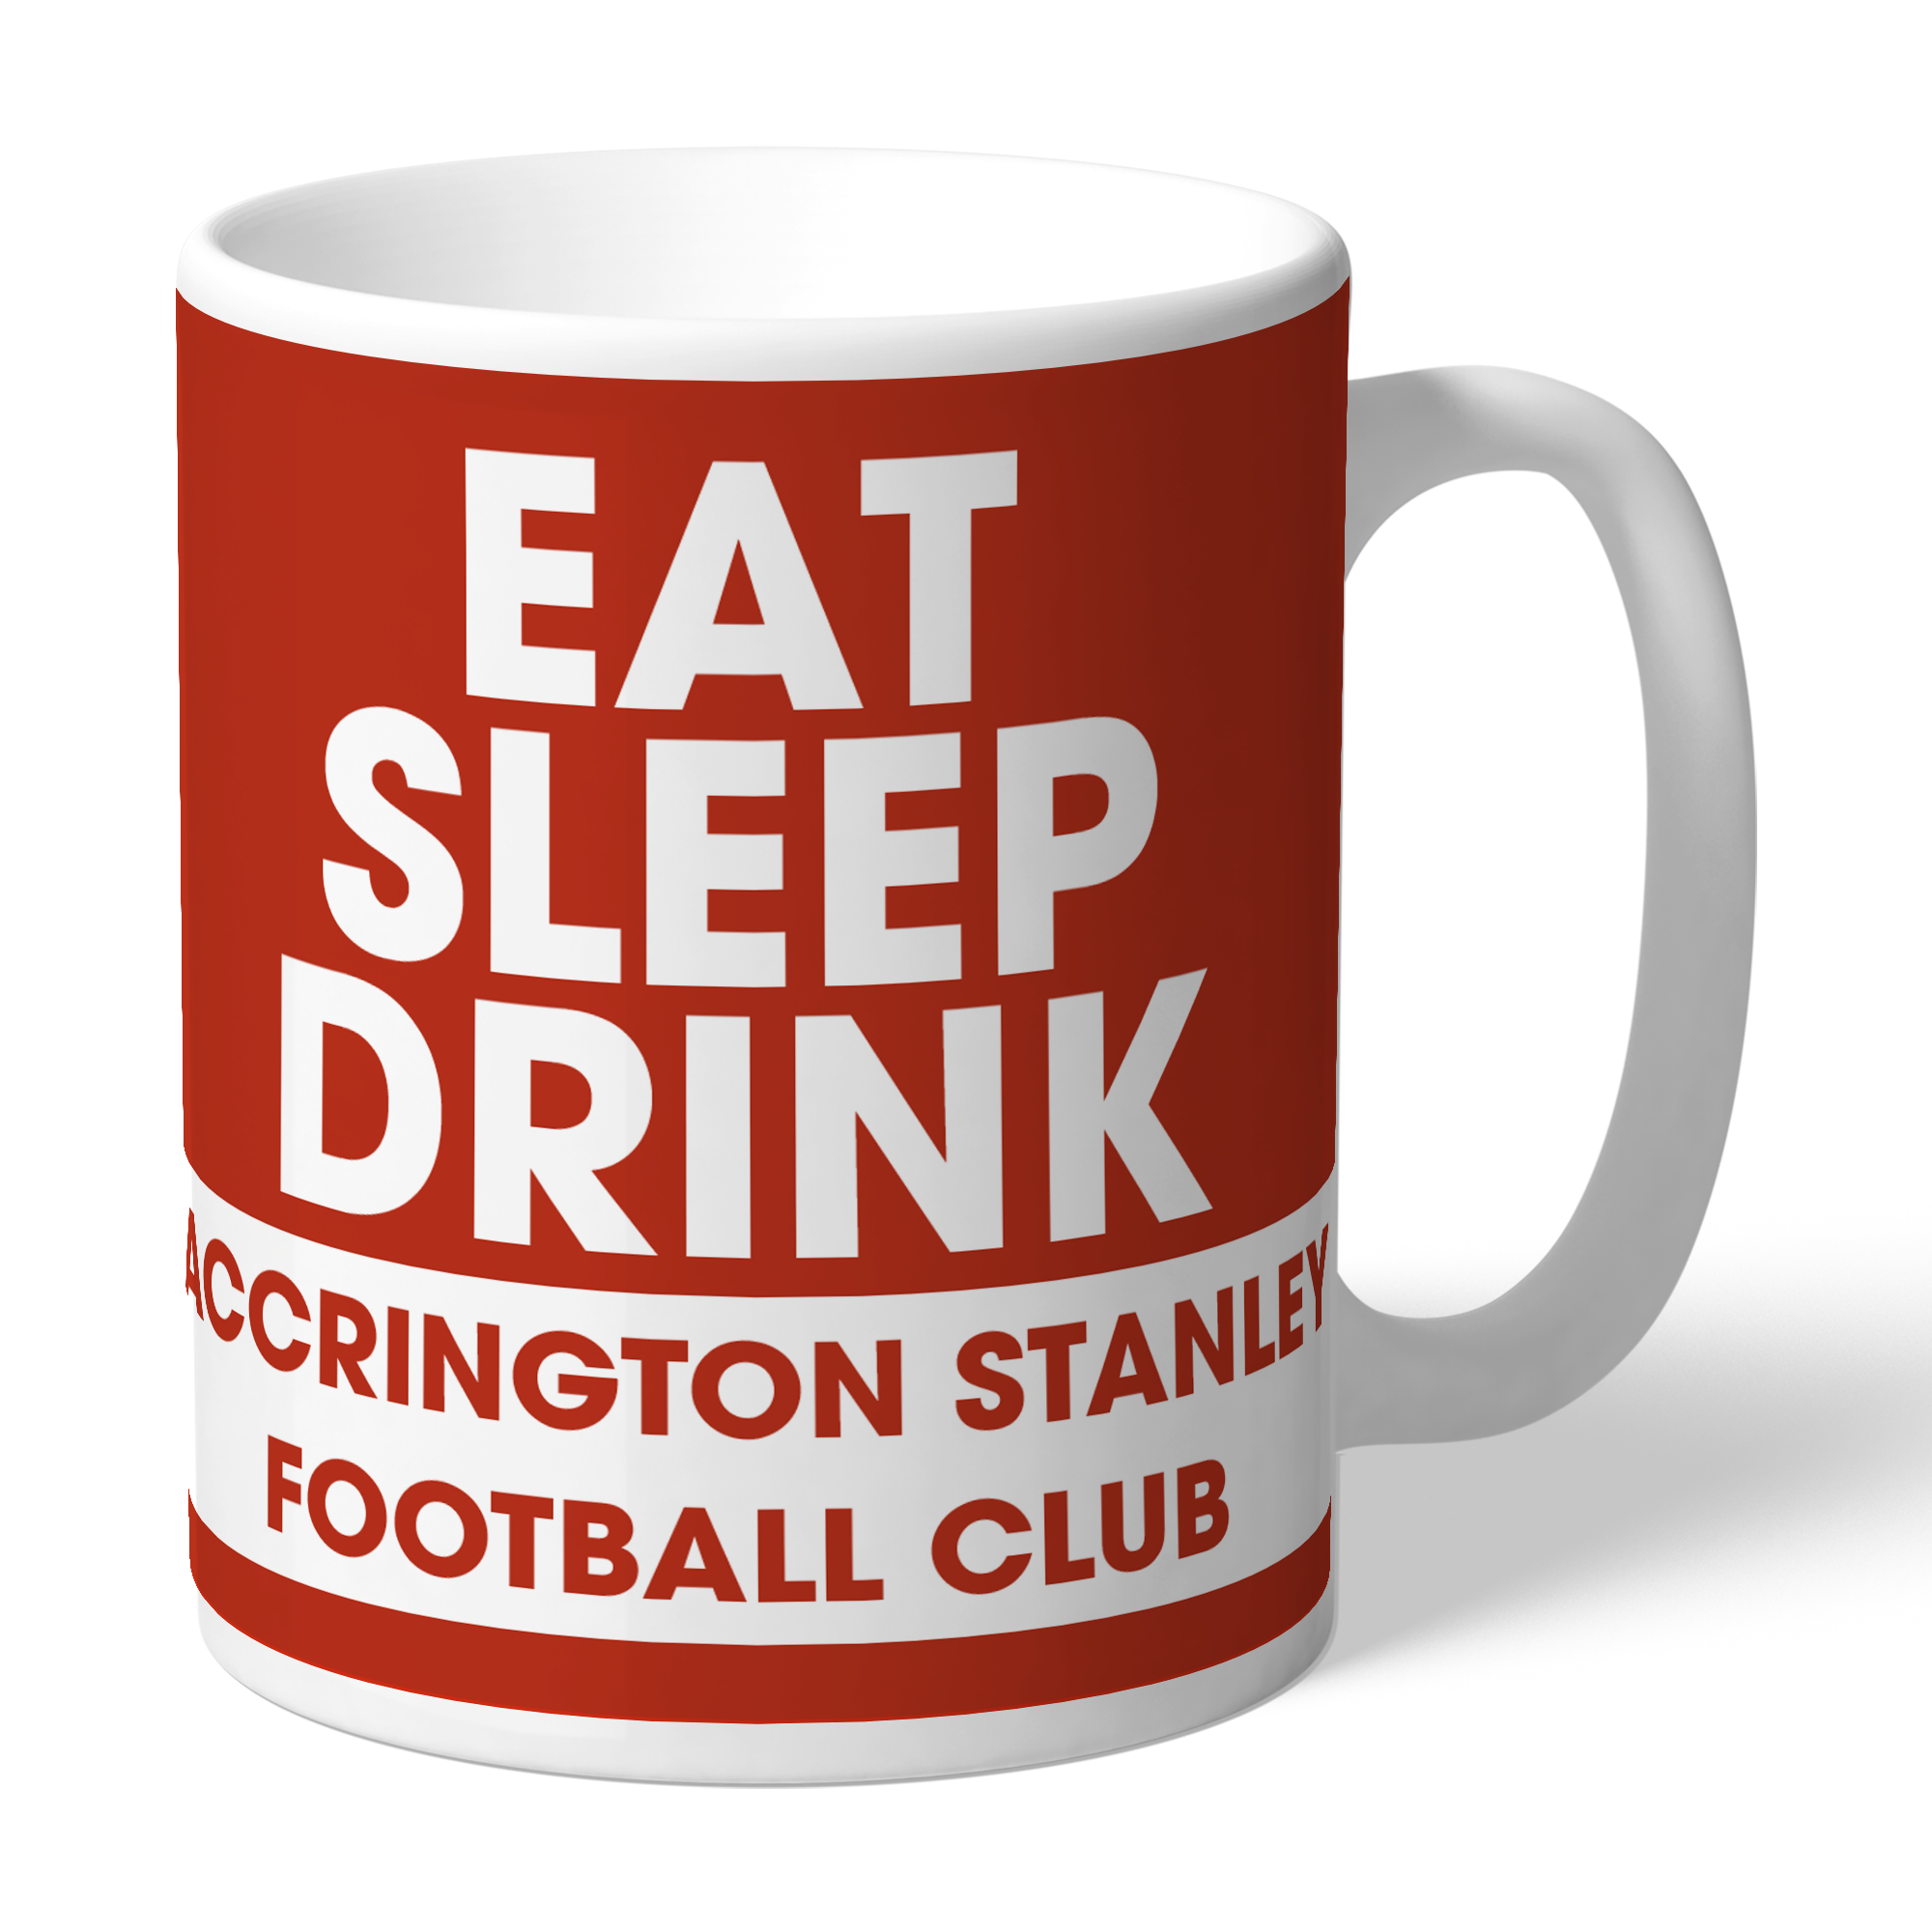 Accrington Stanley Eat Sleep Drink Mug